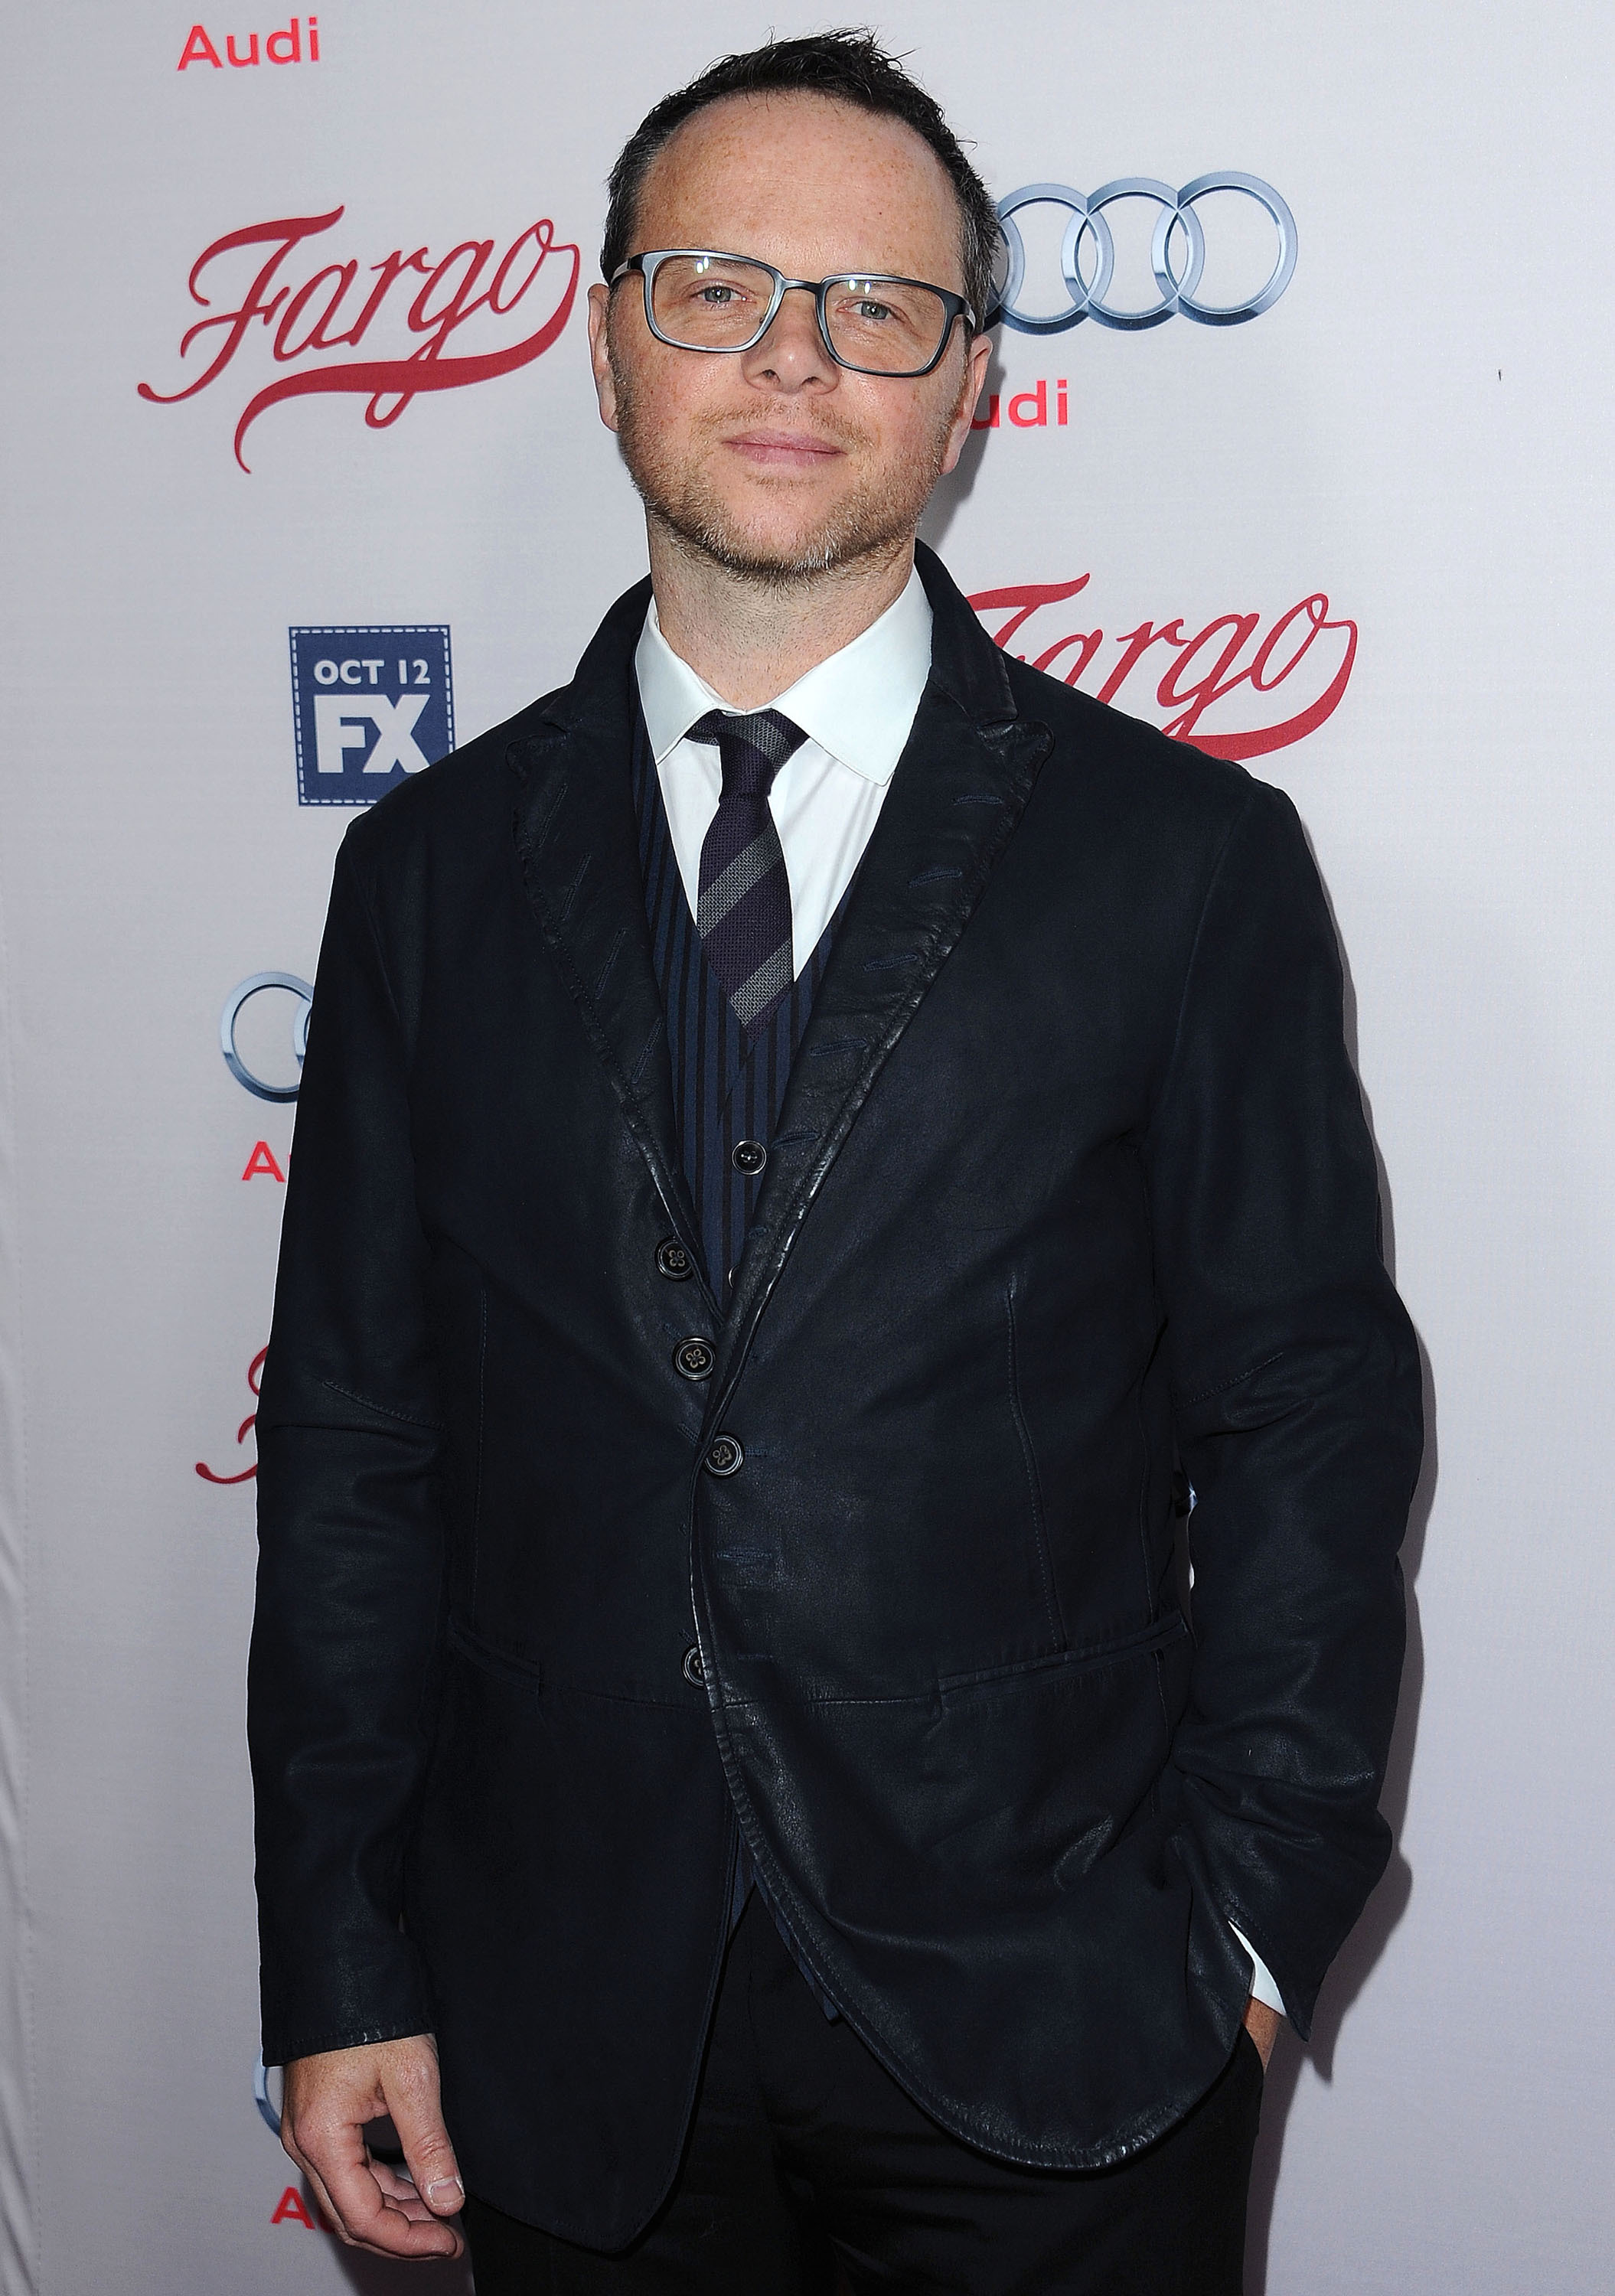 LOS ANGELES - OCTOBER 7:  Executive Producer Noah Hawley arrives at the red carpet premiere screening of FX's 'Fargo' at the ArcLight Hollywood on October 7, 2015 in Los Angeles, California. Cr: Scott Kirkland/PictureGroup/FX